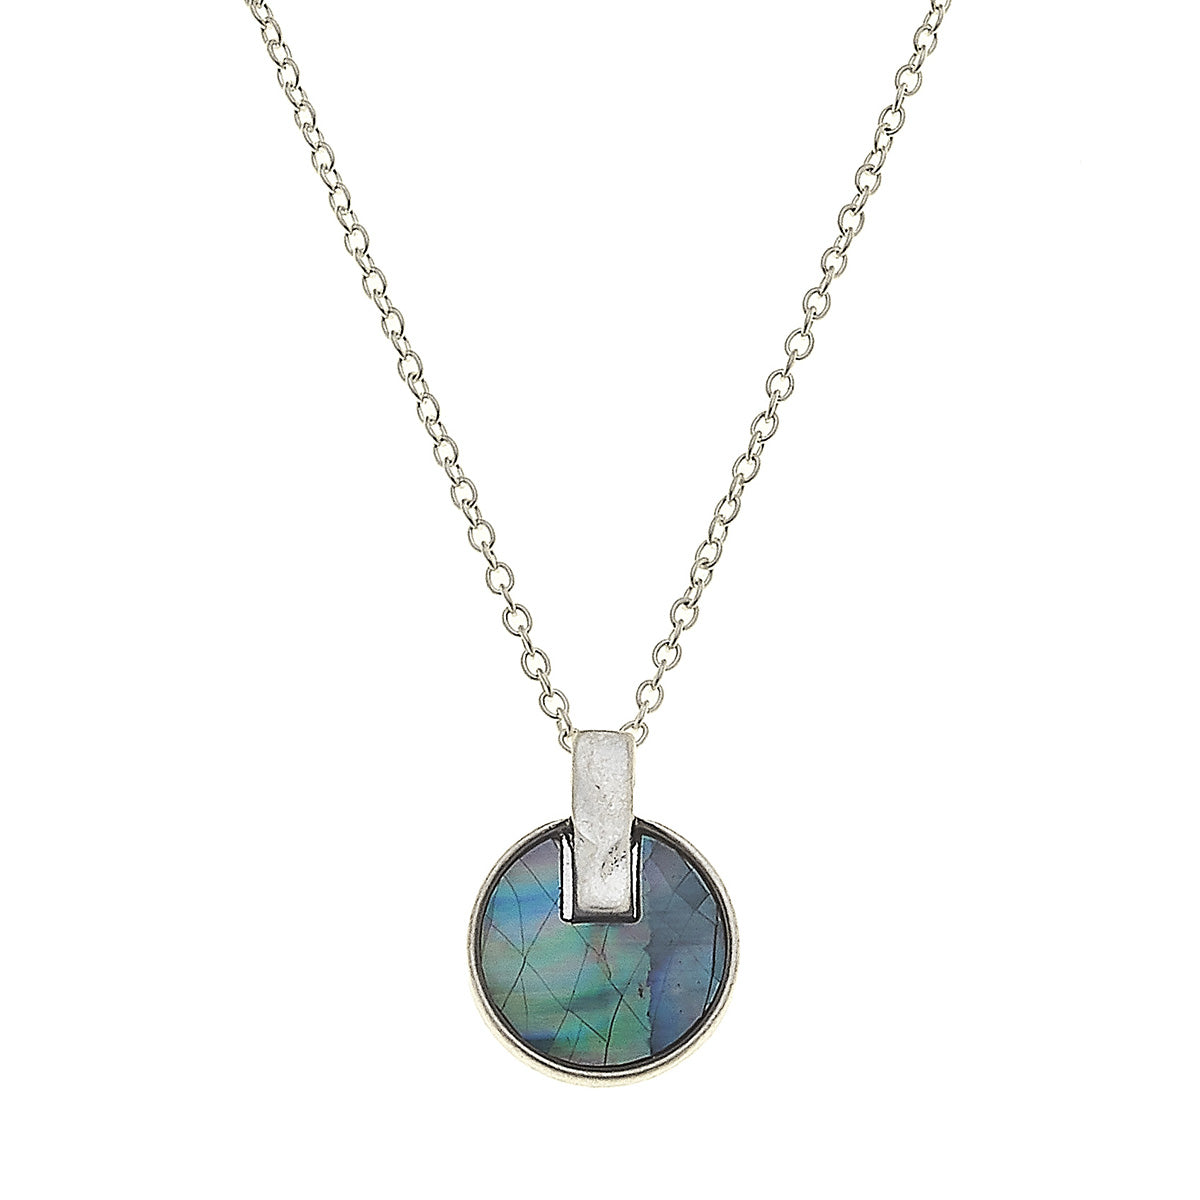 Siena Disc Necklace in Grey Mother of Pearl Shell